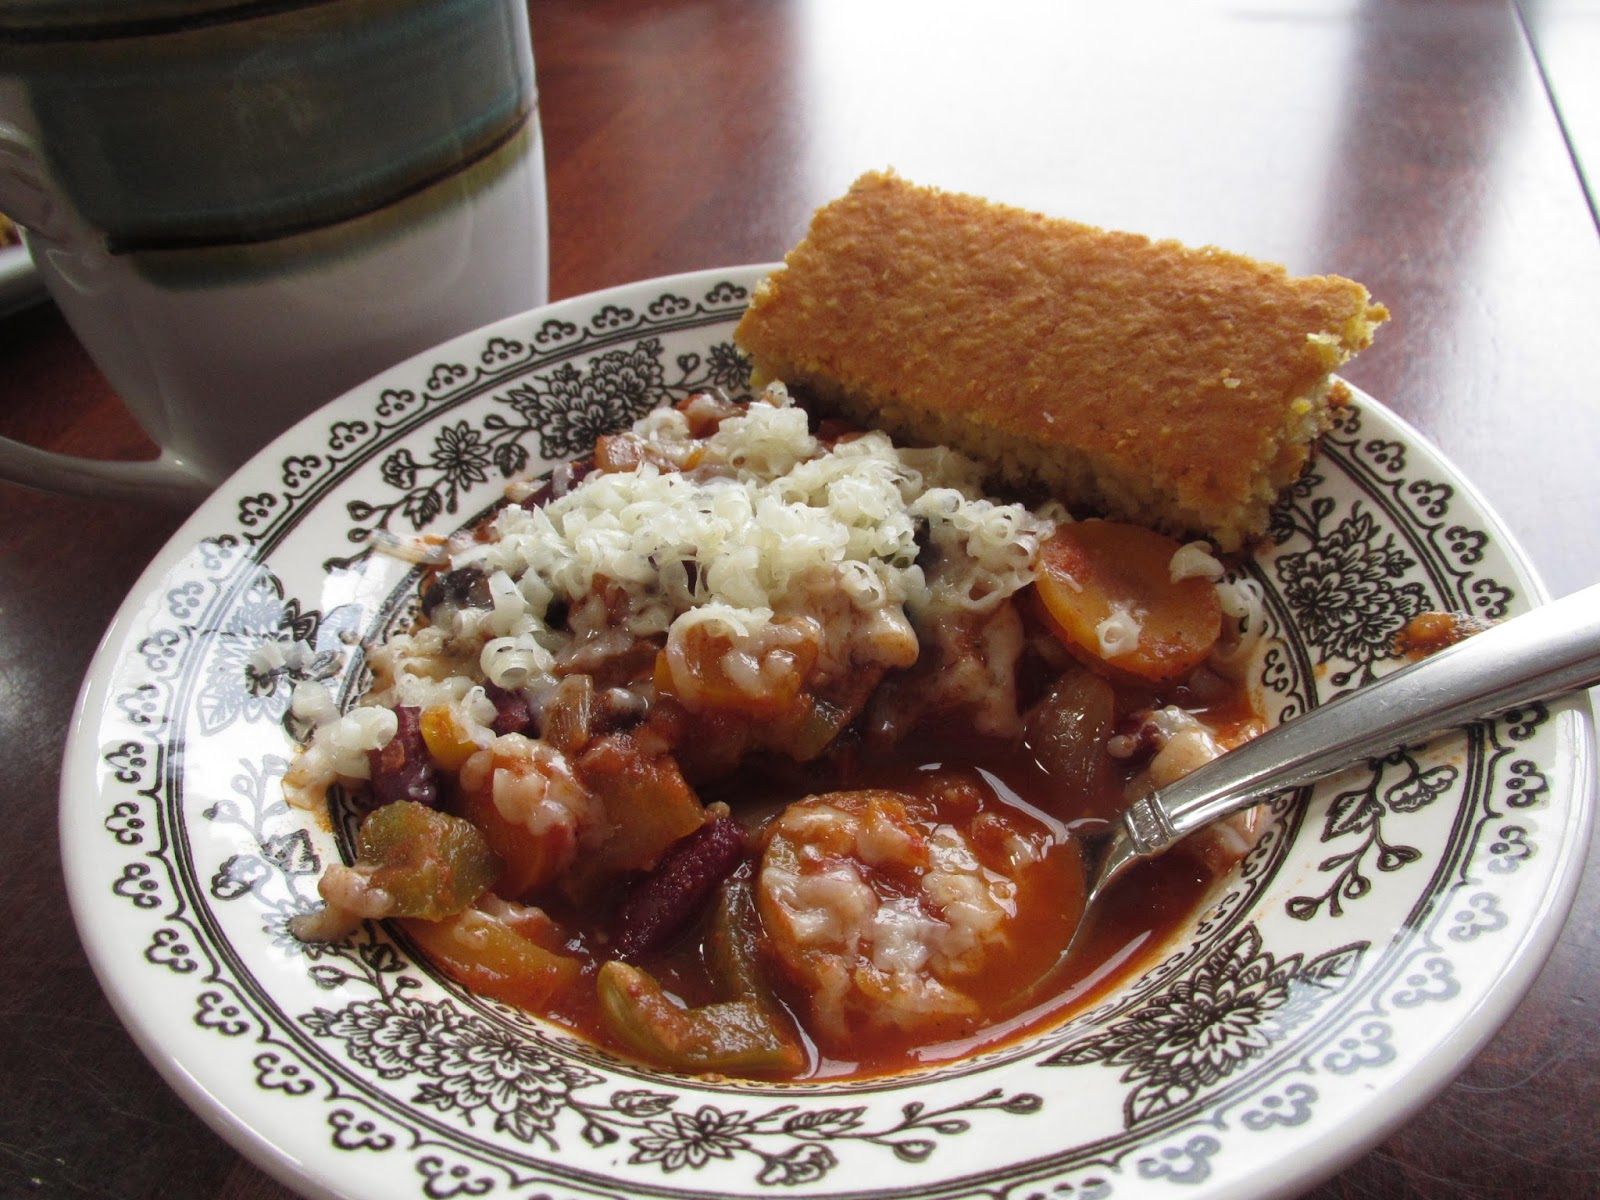 ... -free Vegetable Chili, served with homemade Gluten-Free cornbread